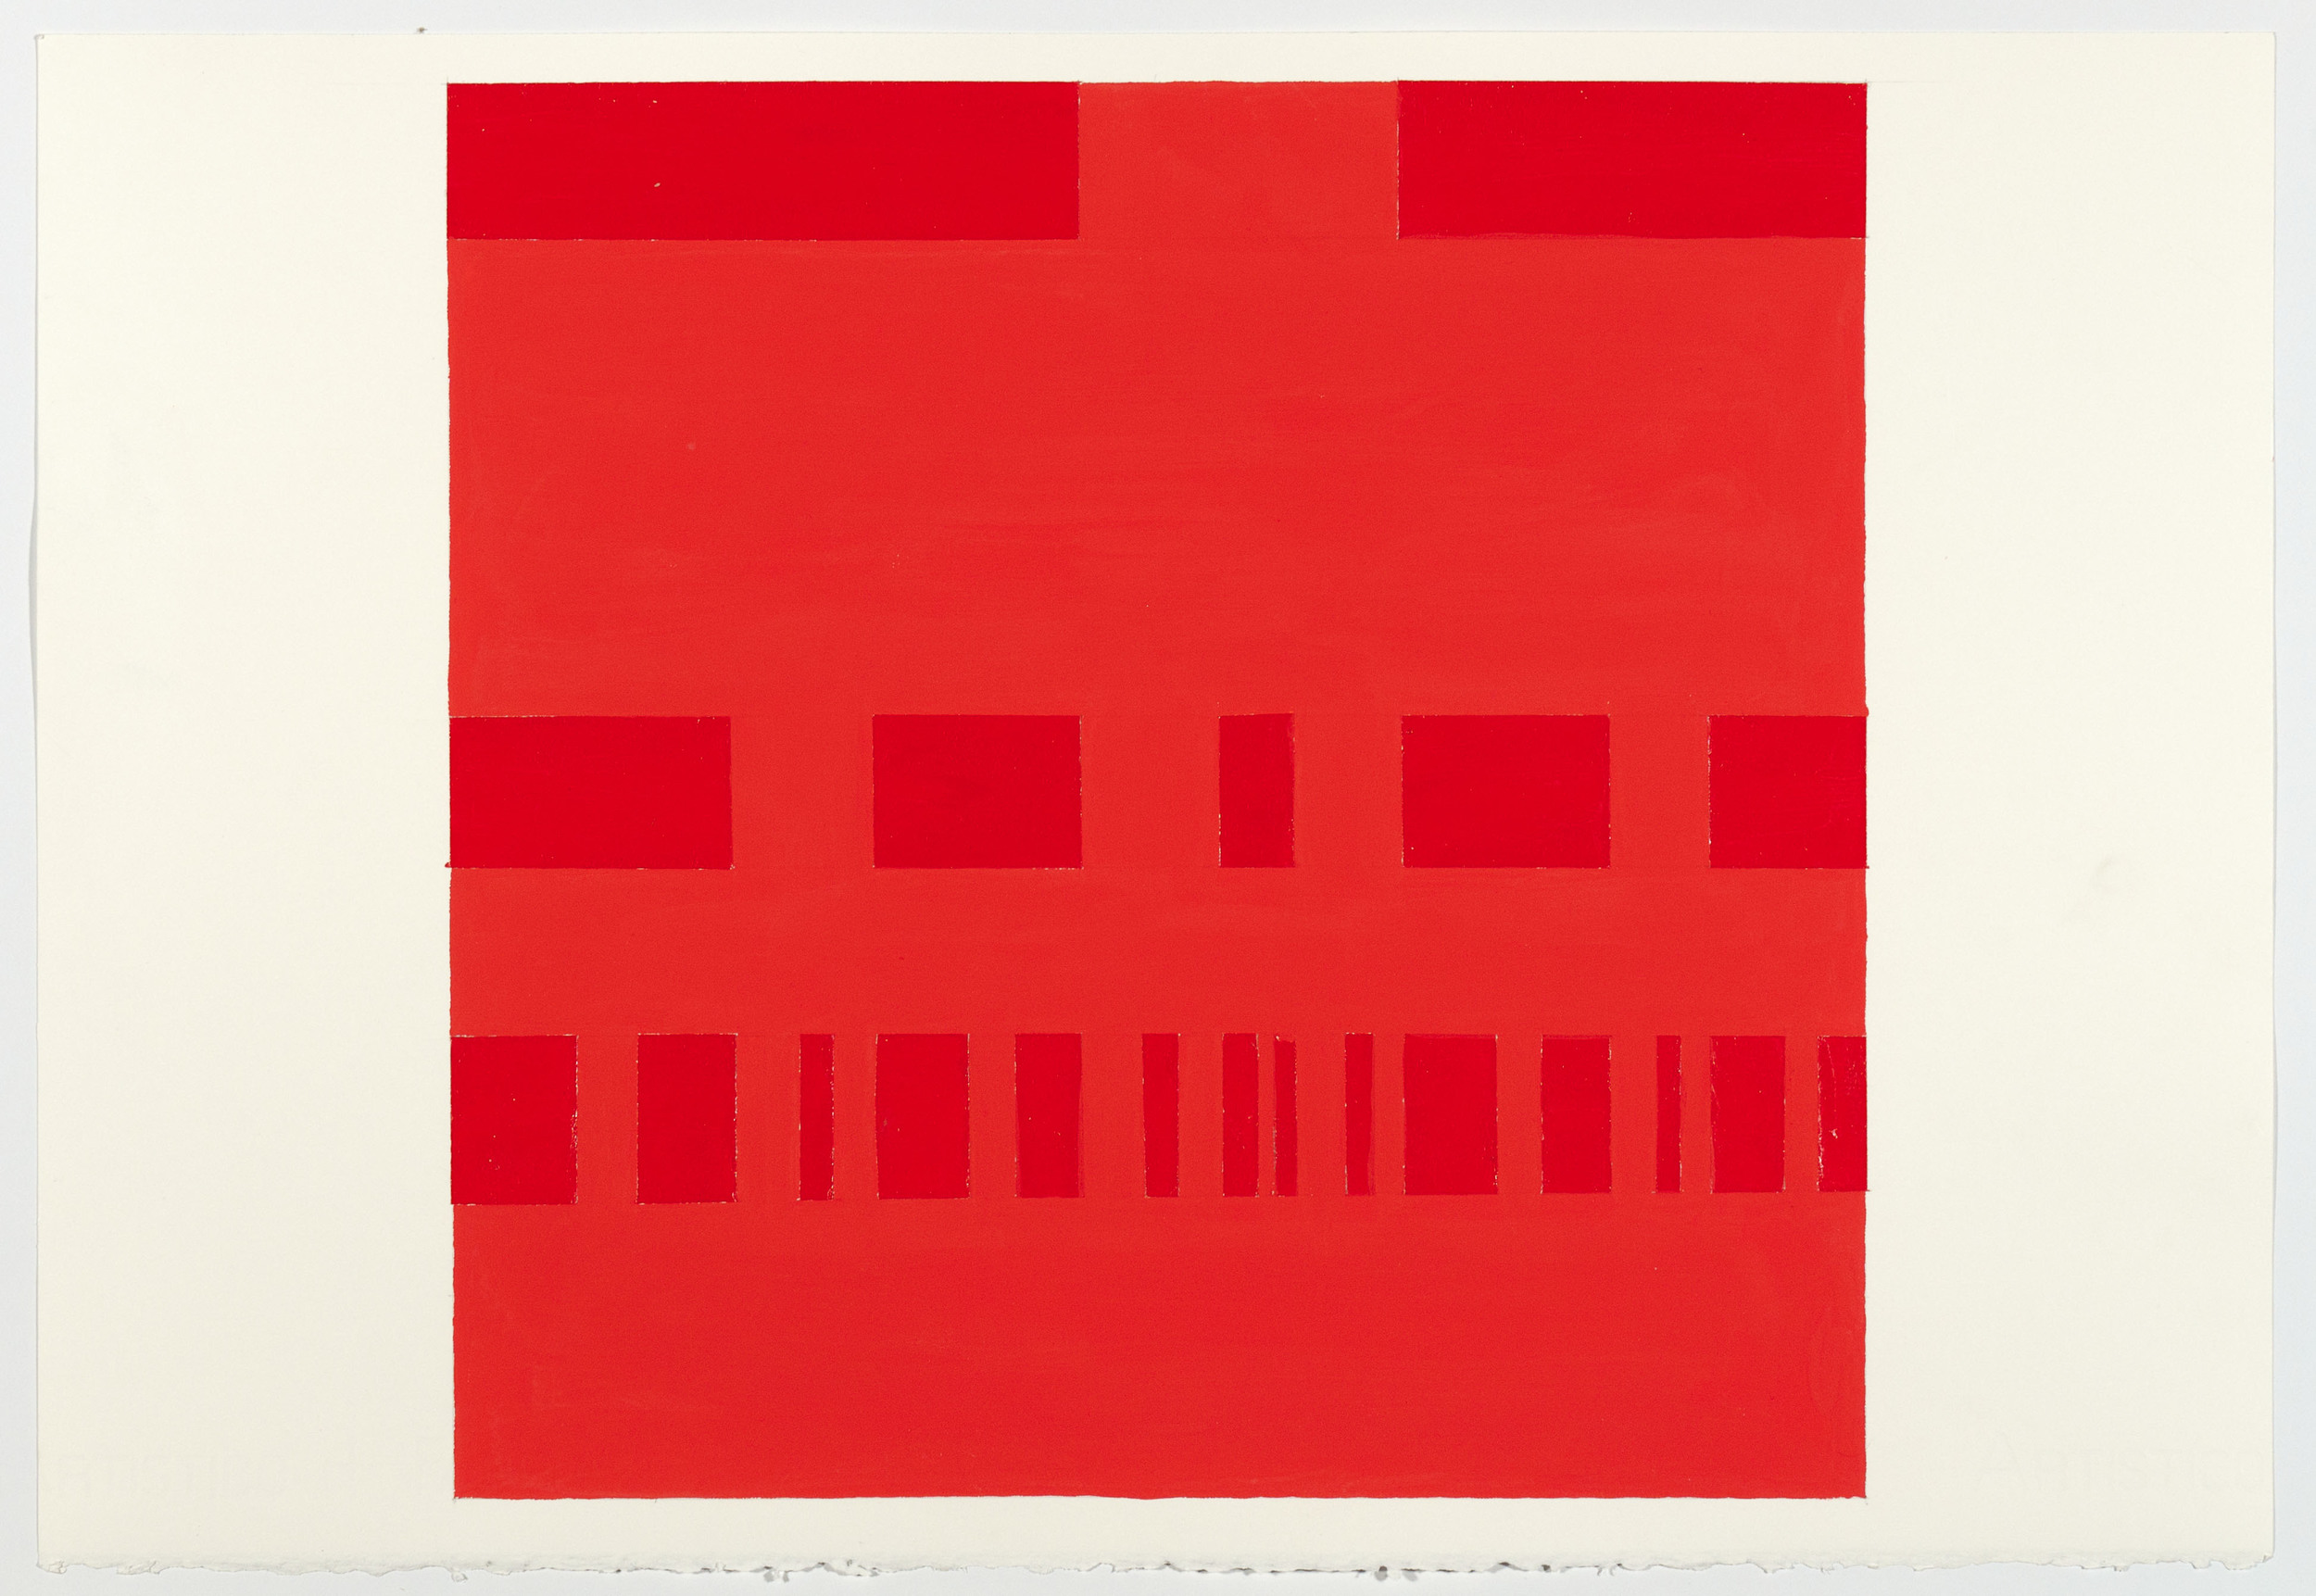 Paul Mogensen, no title, 3 rows-subdivided, 2012, Gloss cadmium red acrylic & gouache on paper, 15 1/4 x 22 inches, PMO1208  4/4  Lawrence Markey Inc.